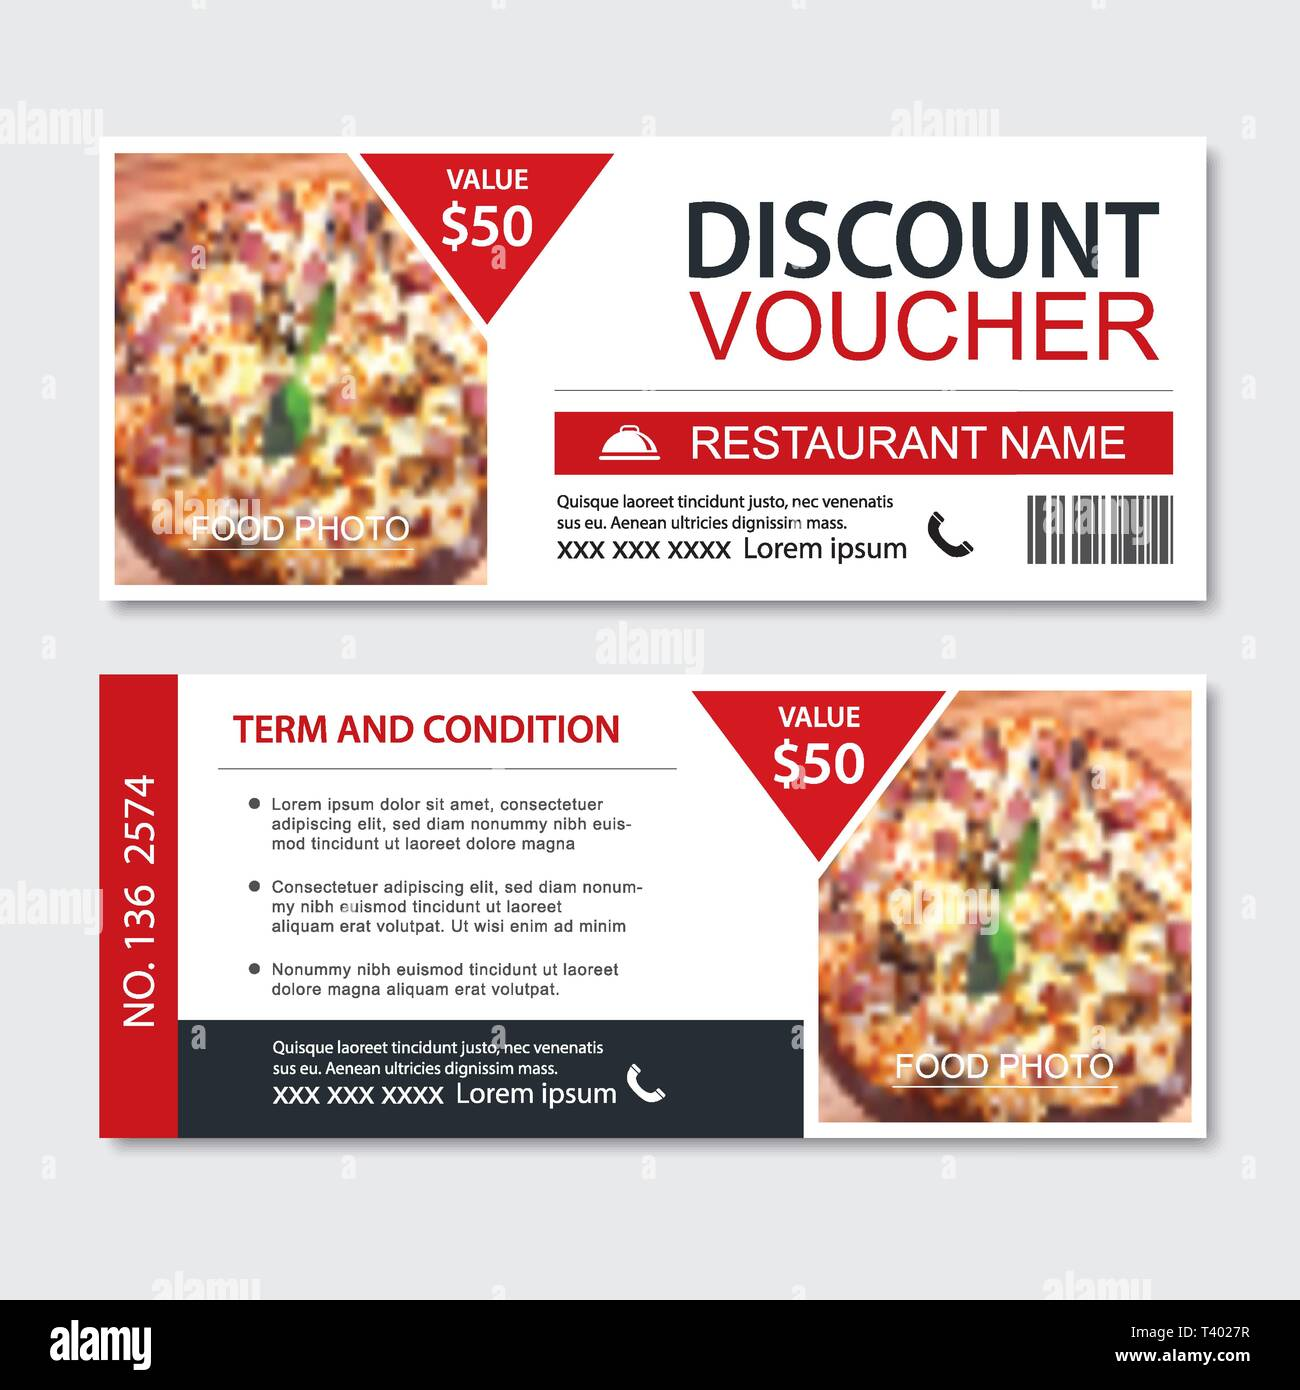 Discount Gift Voucher Fast Food Template Design Pizza Set Use For Coupon Banner Flyer Sale Promotion Stock Vector Image Art Alamy